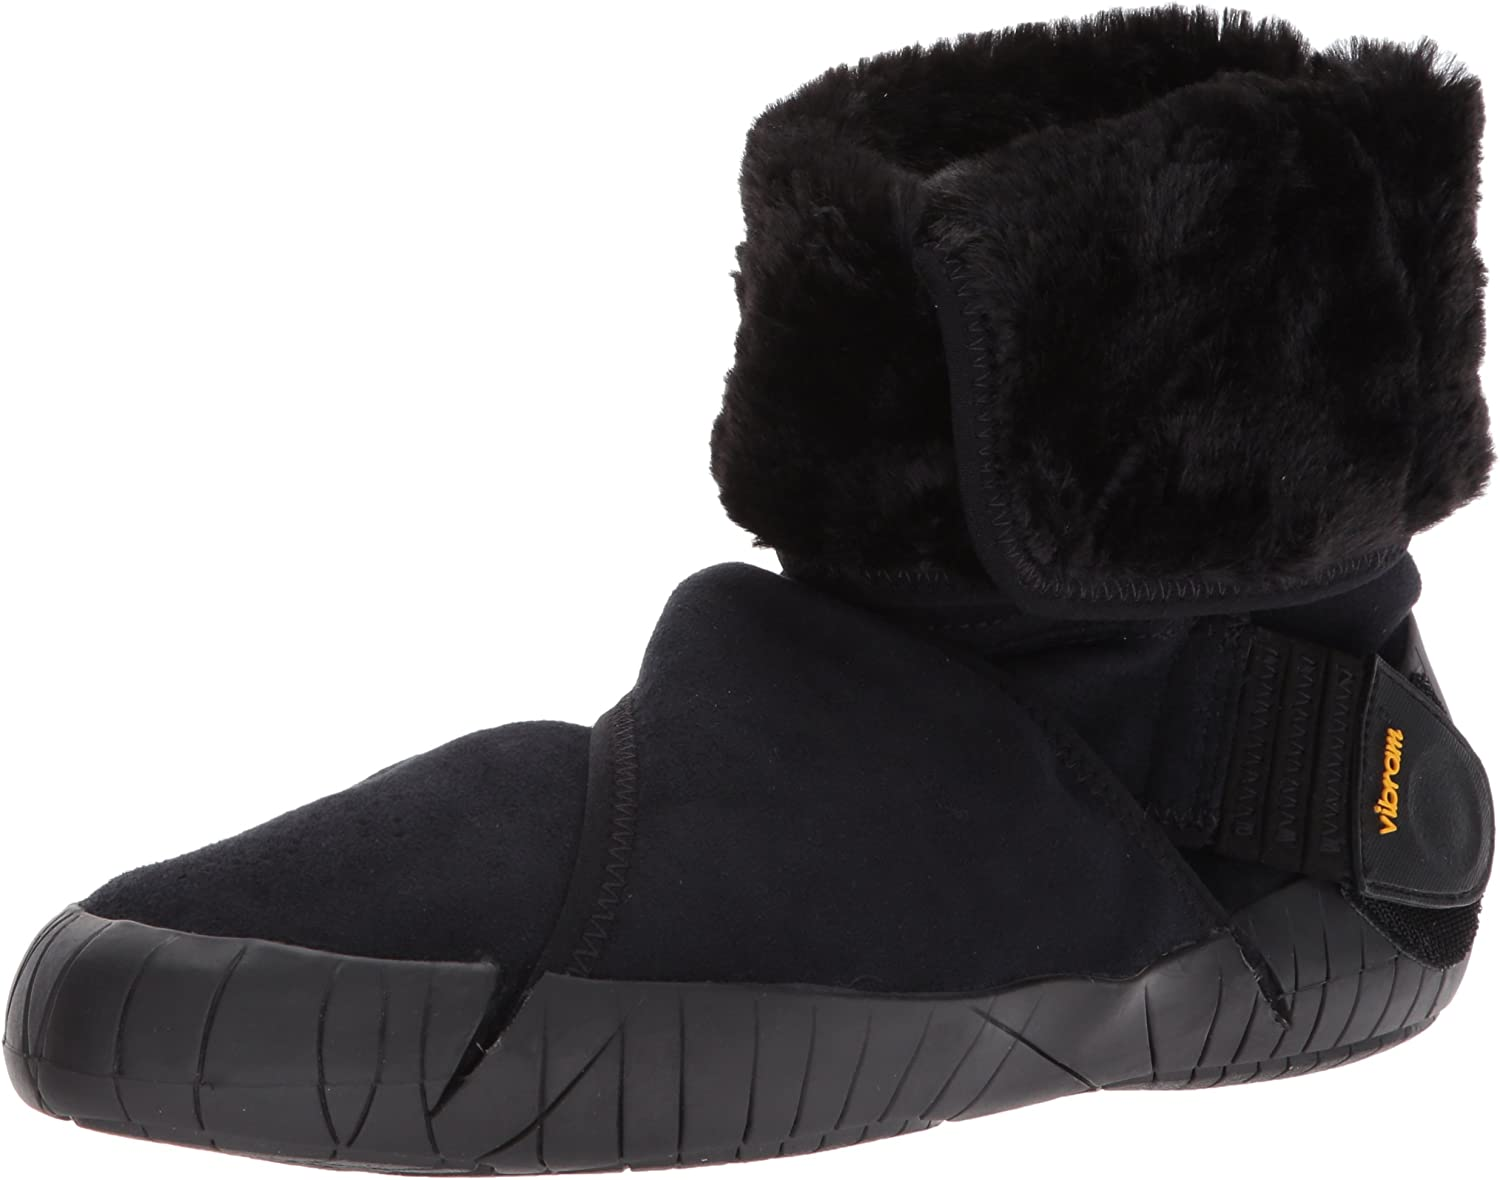 Vibram Unisex-Adult Furoshiki Mid Boot Black Sn Eastern Traveler Our shop Limited time for free shipping OFFers the best service